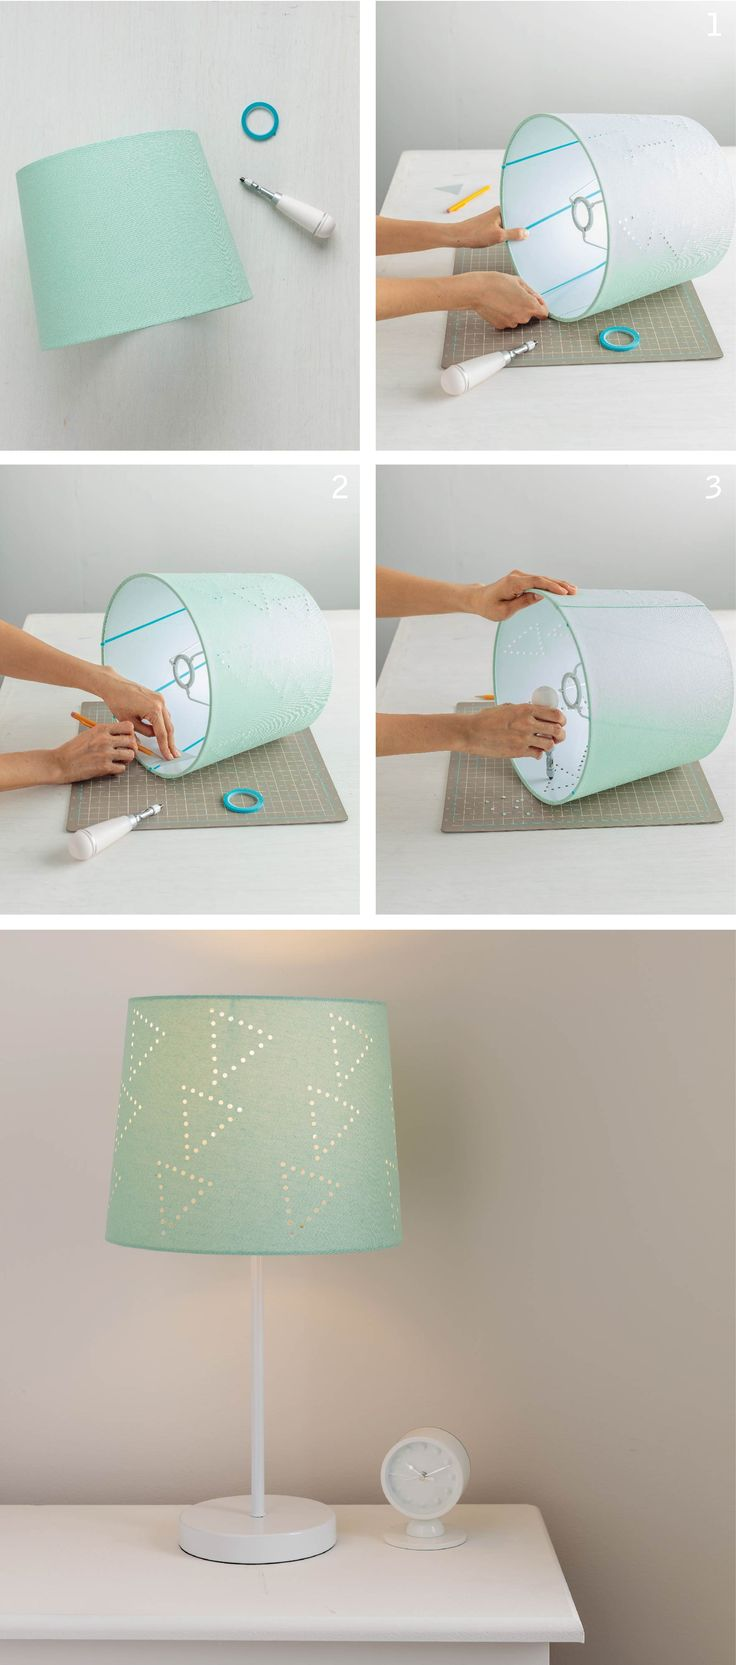 1000+ images about DIY & Crafts: Lamps/Ligthings on Pinterest ...